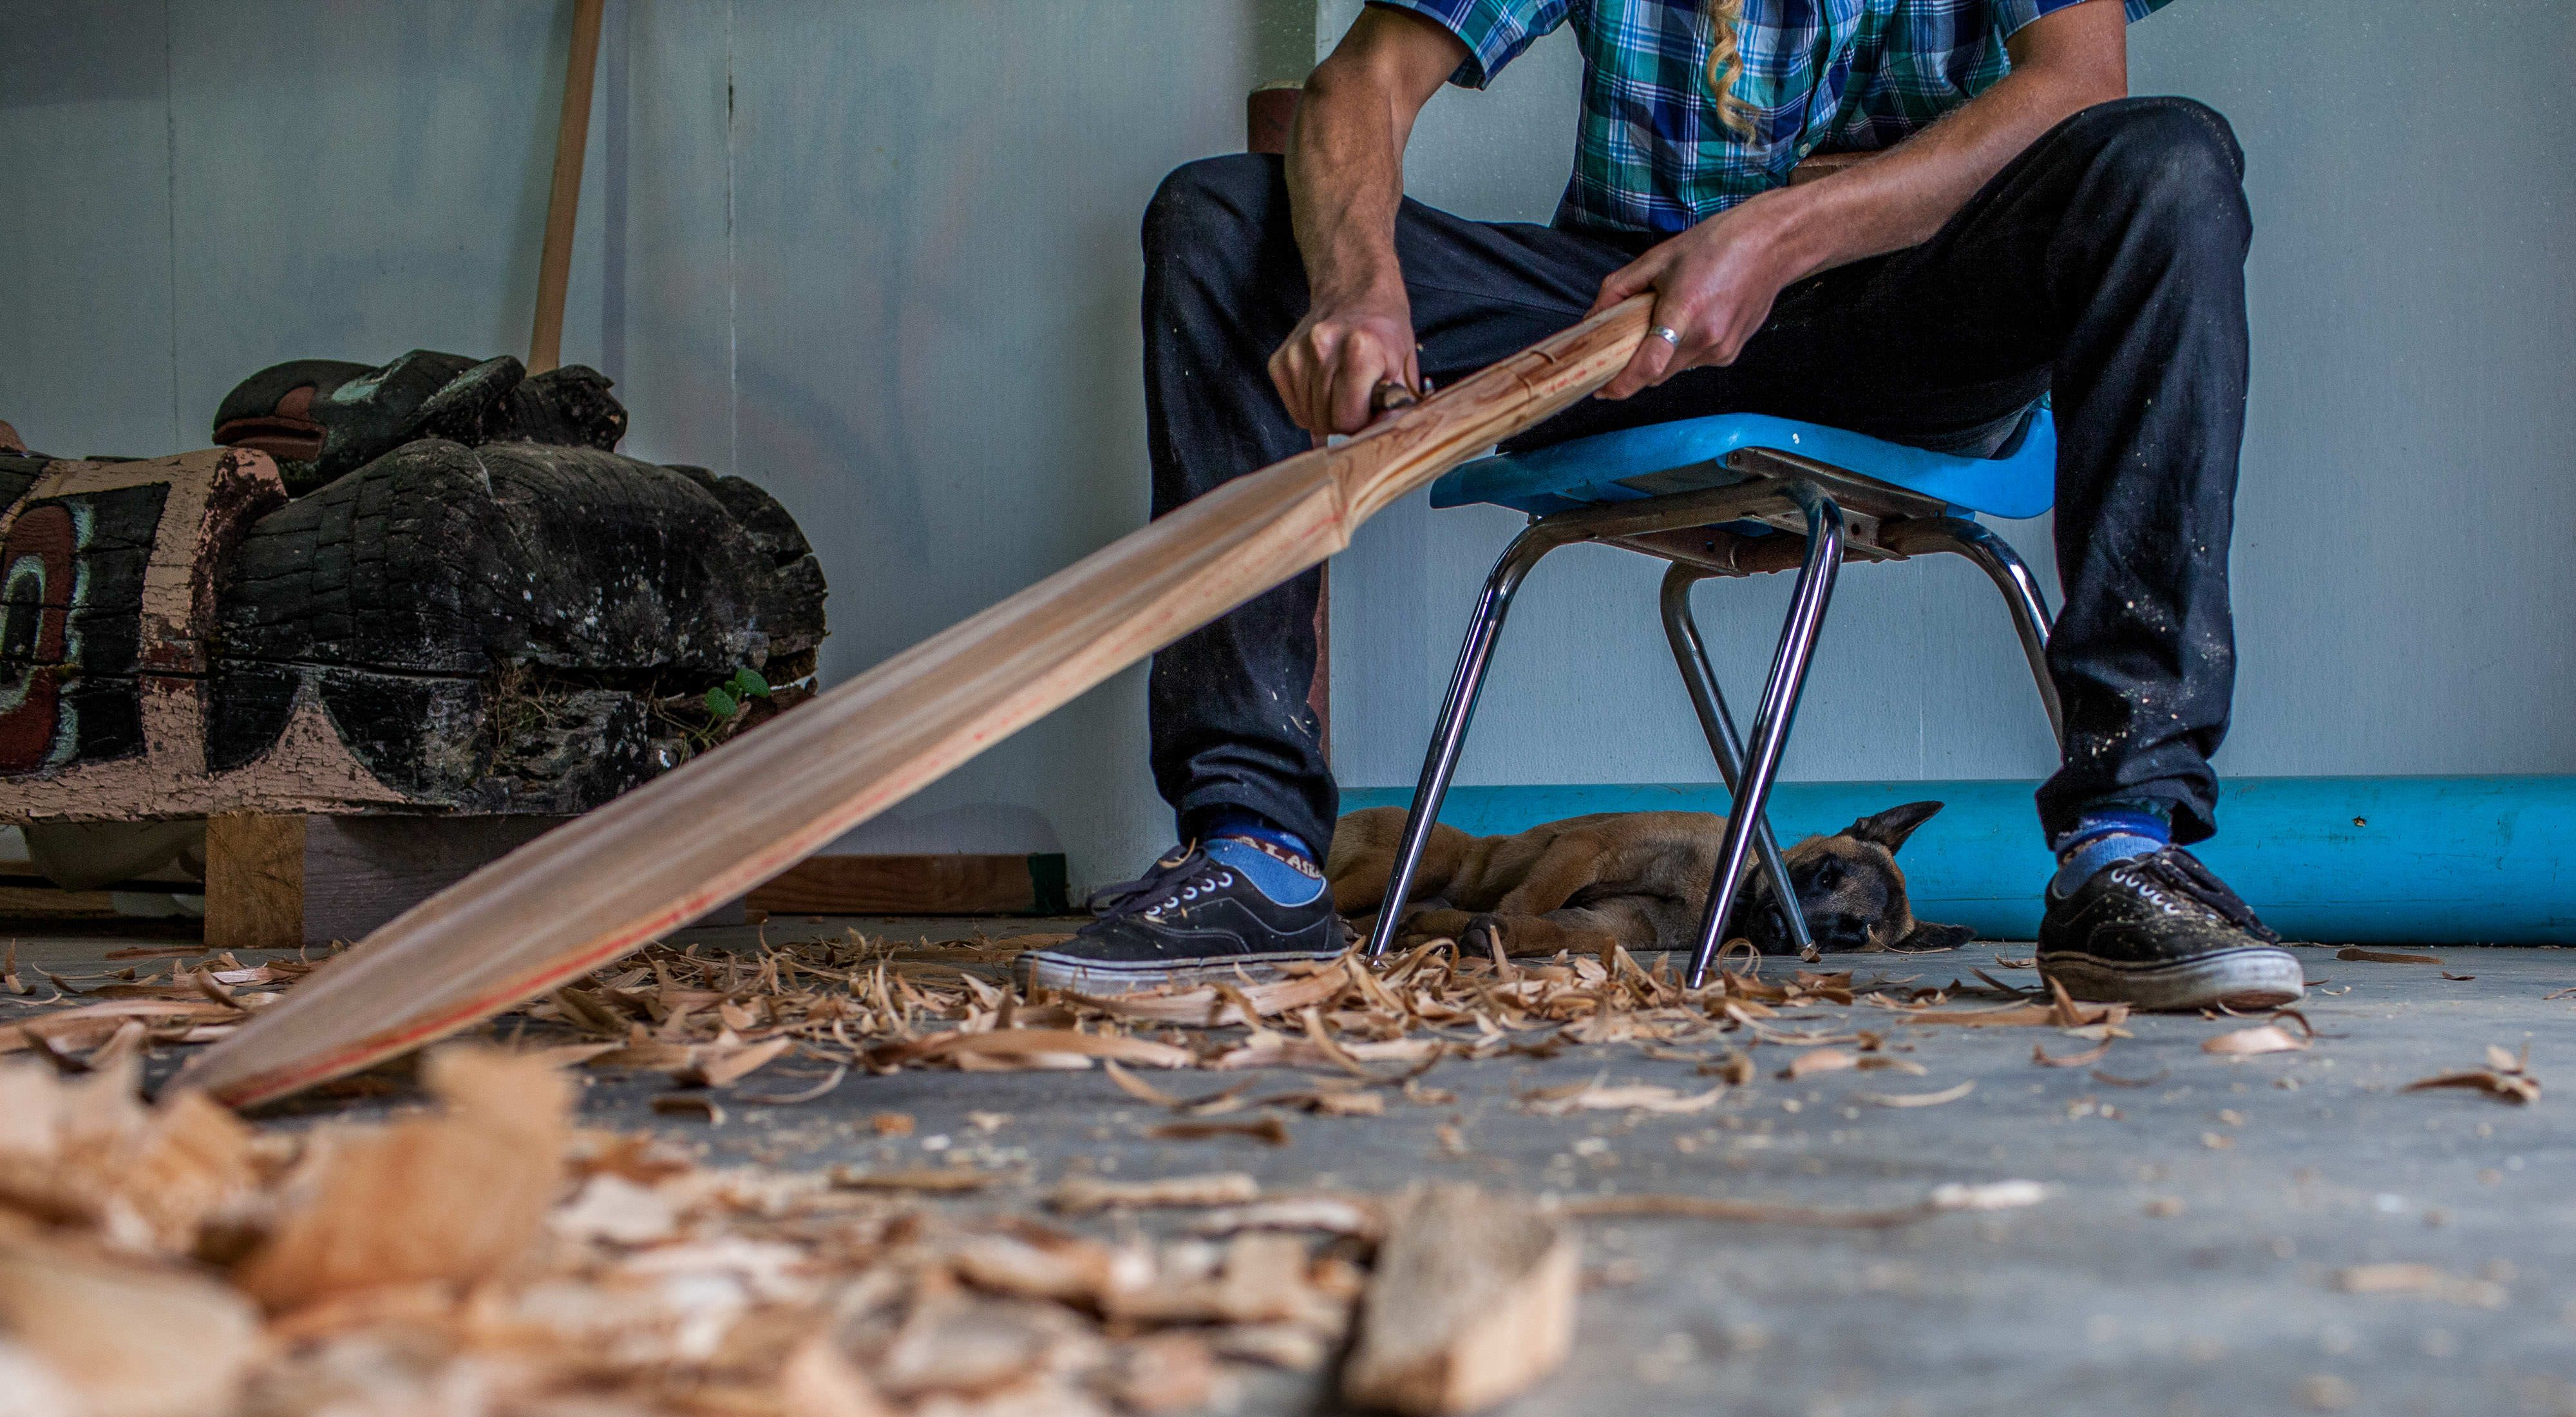 Carving a canoe paddle by hand